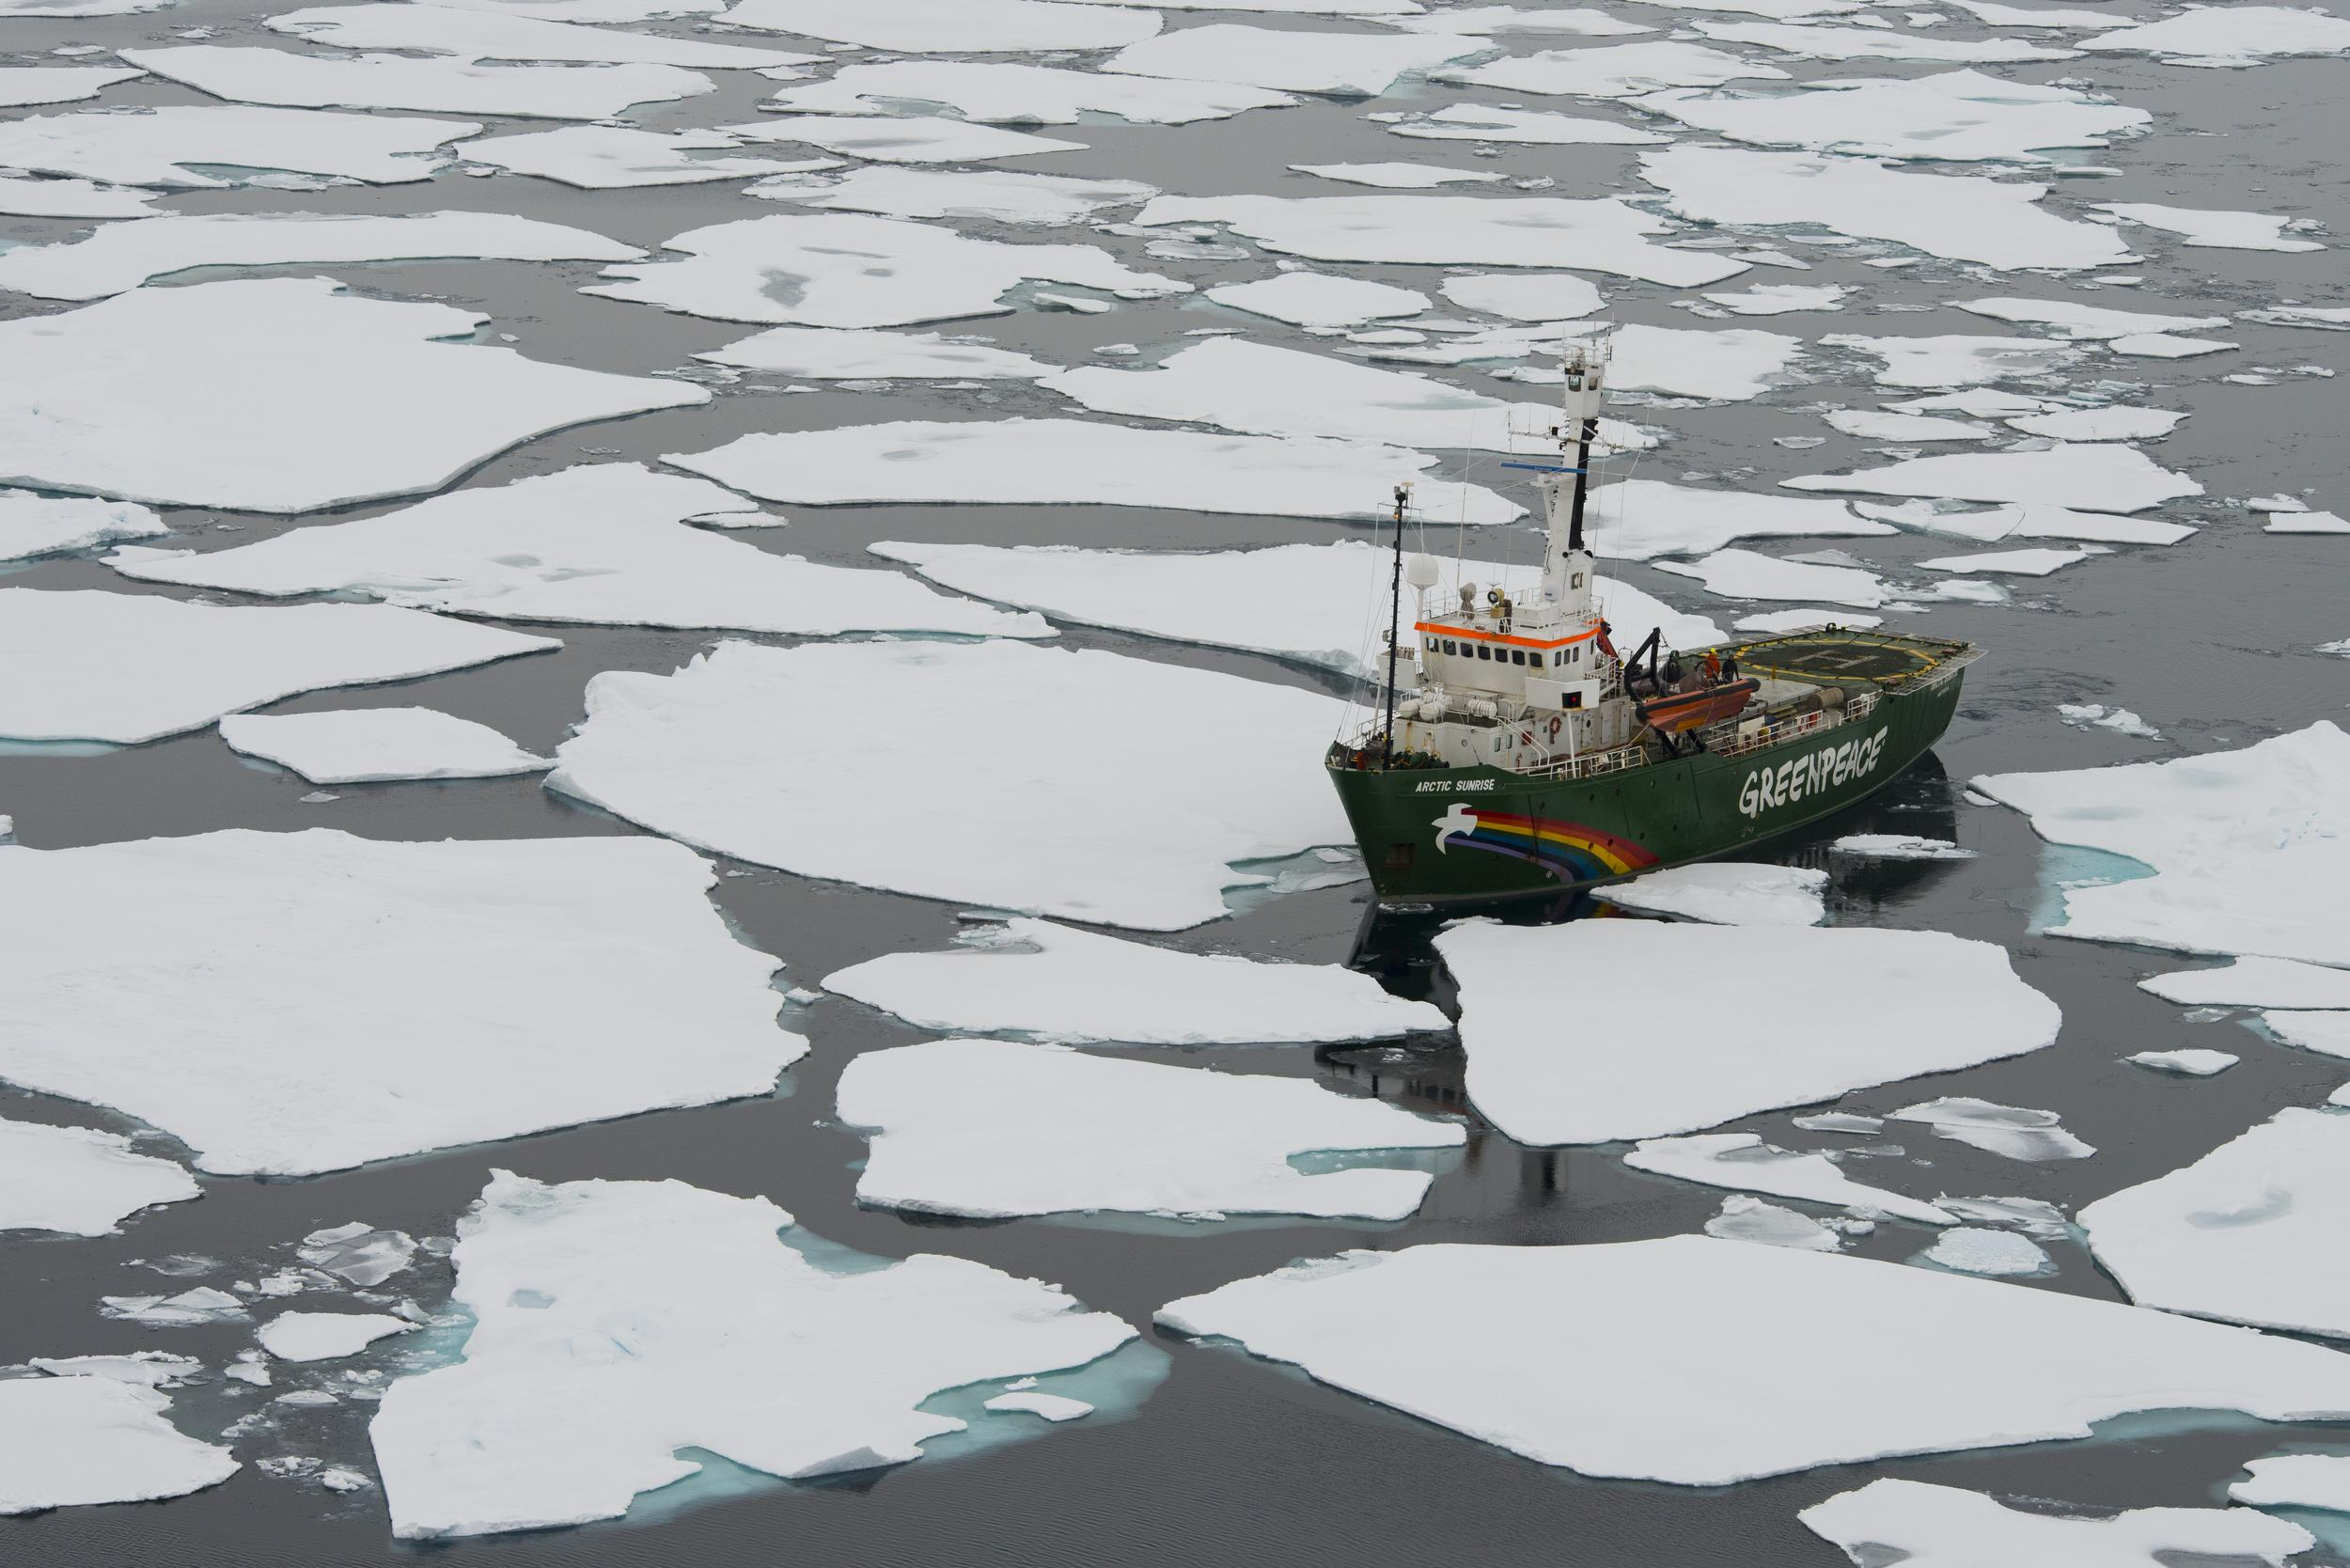 Greenpeace ship amidst ice floes in the Arctic